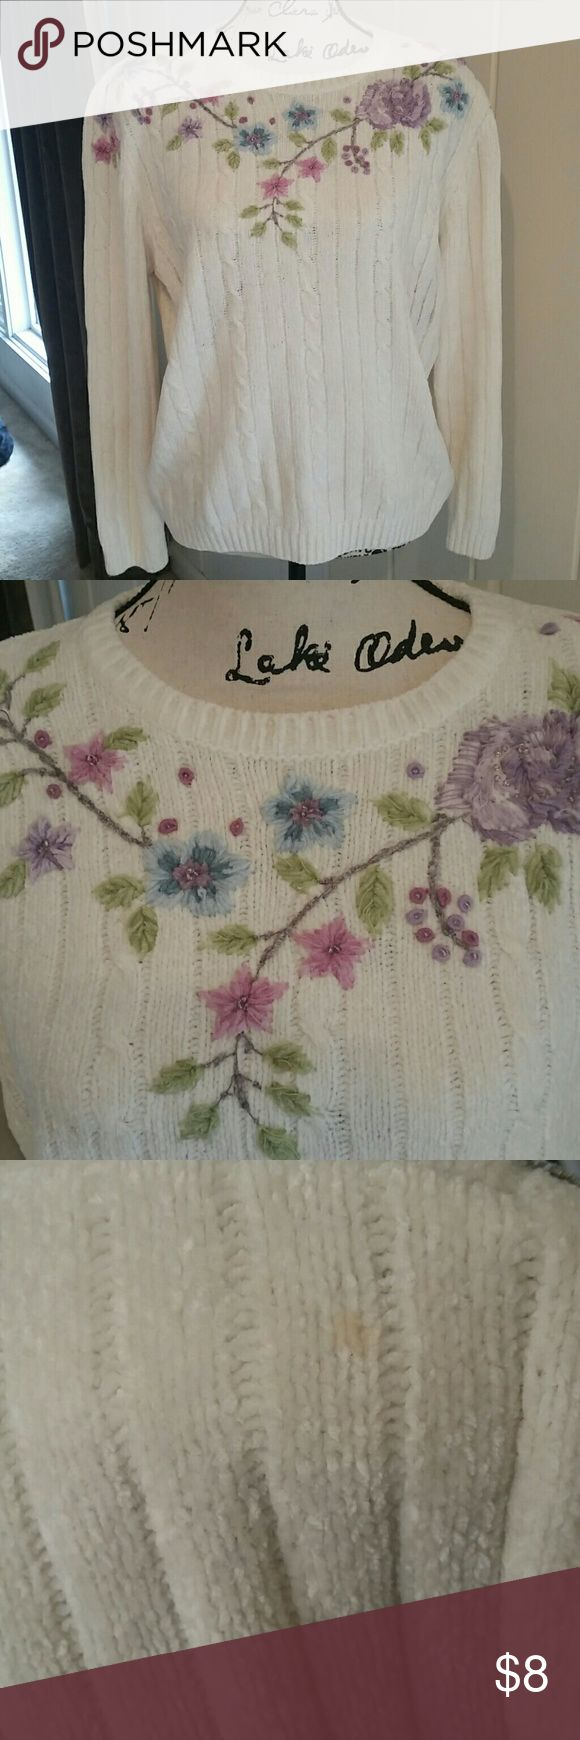 Vintage Sweater Soft and cozy Alfred Dunner vintage sweater in very good used condition. The only flaw is one small discoloration on the back of the right shoulder (pic 3). I honestly don't believe anyone would notice it unless they were looking for it. Antique white in color. Alfred Dunner Sweaters